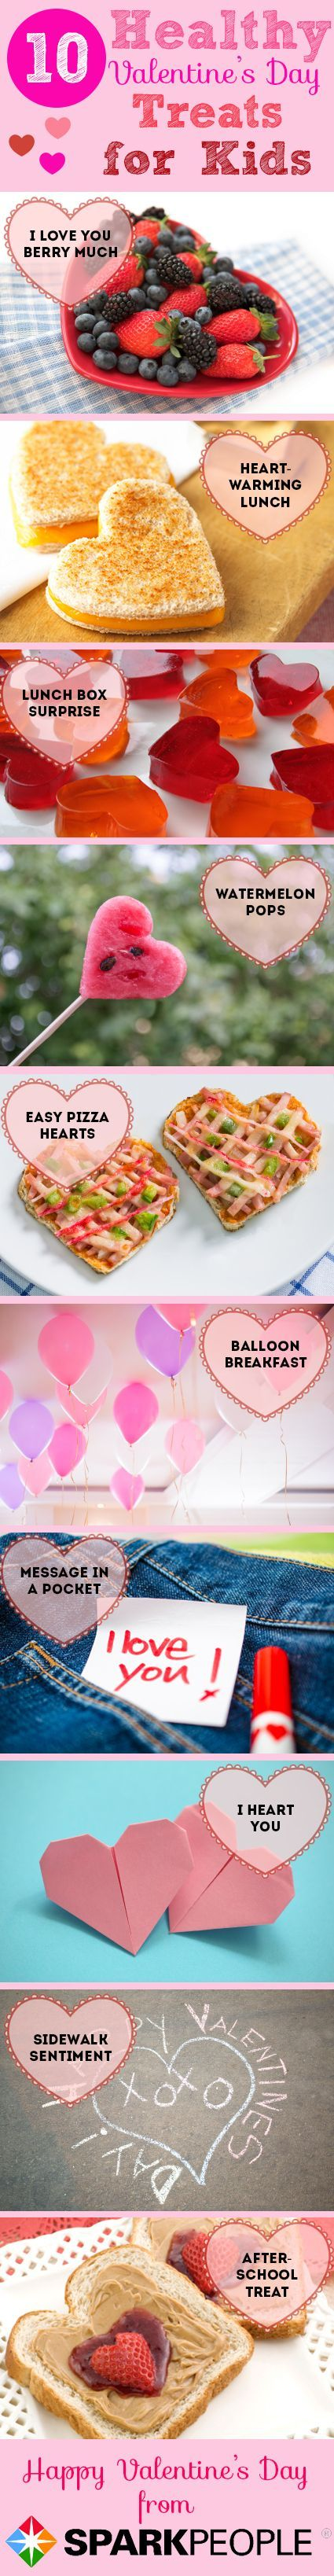 Kid-Friendly Valentine's Day Surprises--that are healthy! Click for recipes/instructions.   via @SparkPeople #food #fun